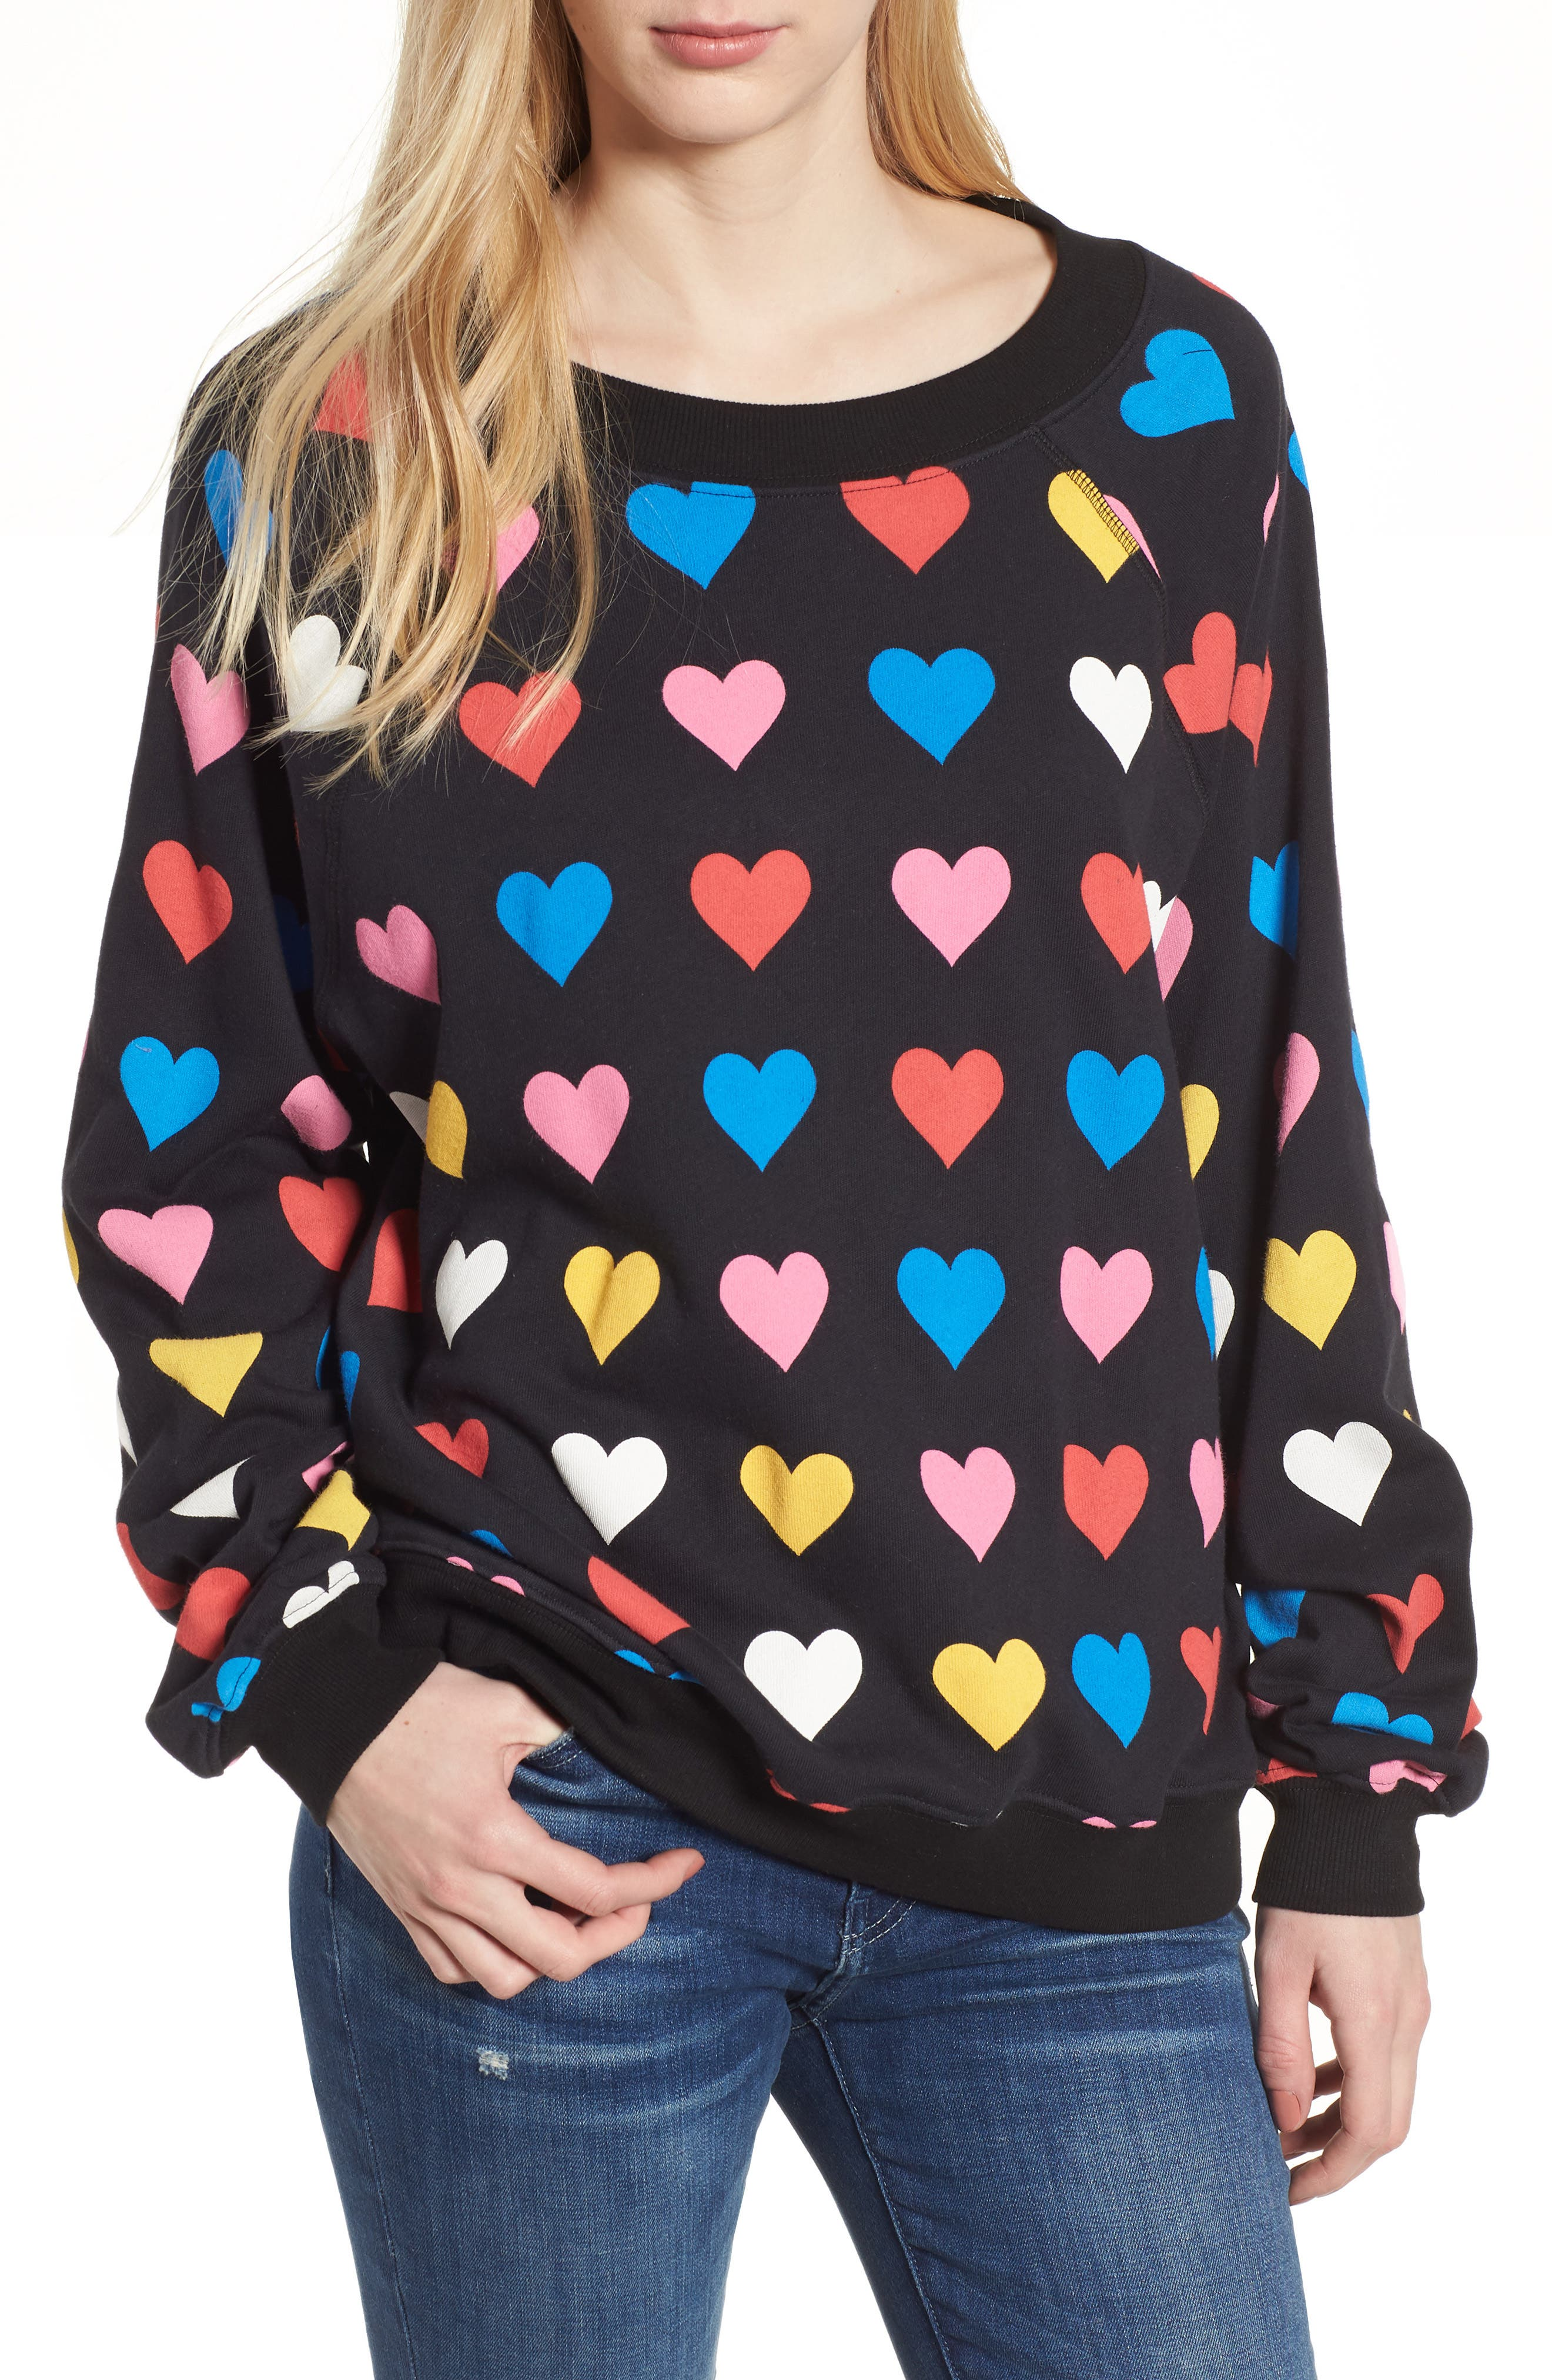 Have a Heart Sommers Sweatshirt,                             Main thumbnail 1, color,                             Black